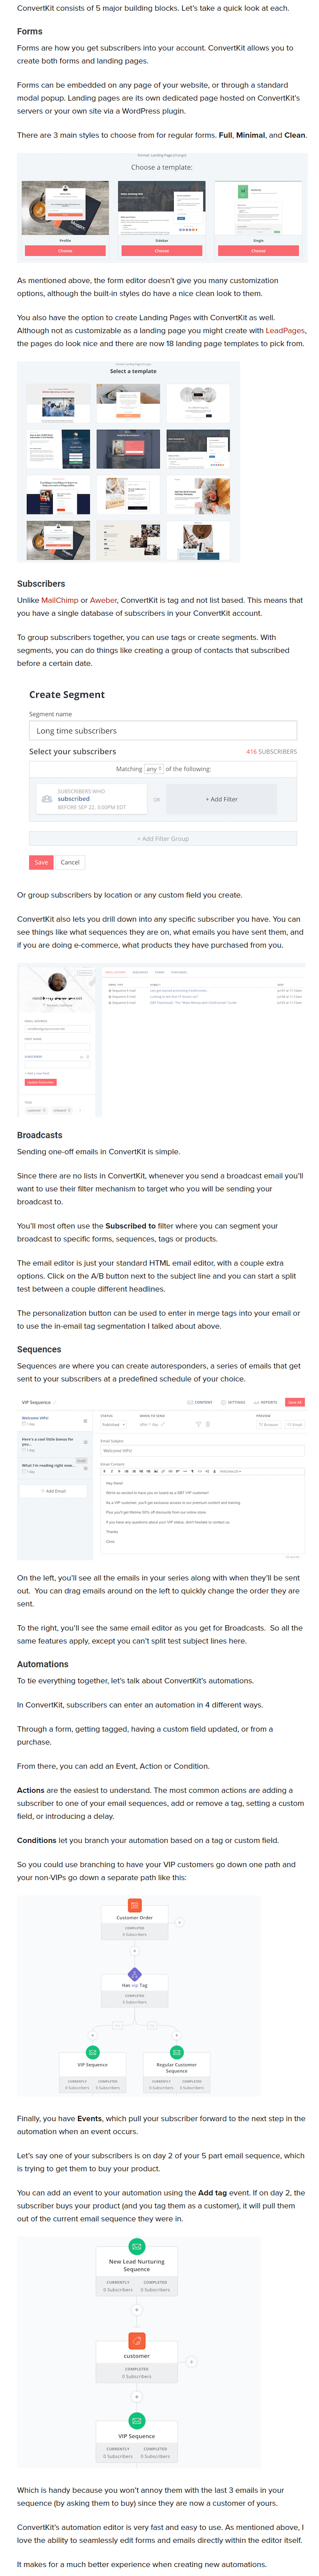 ConvertKit Review (6)